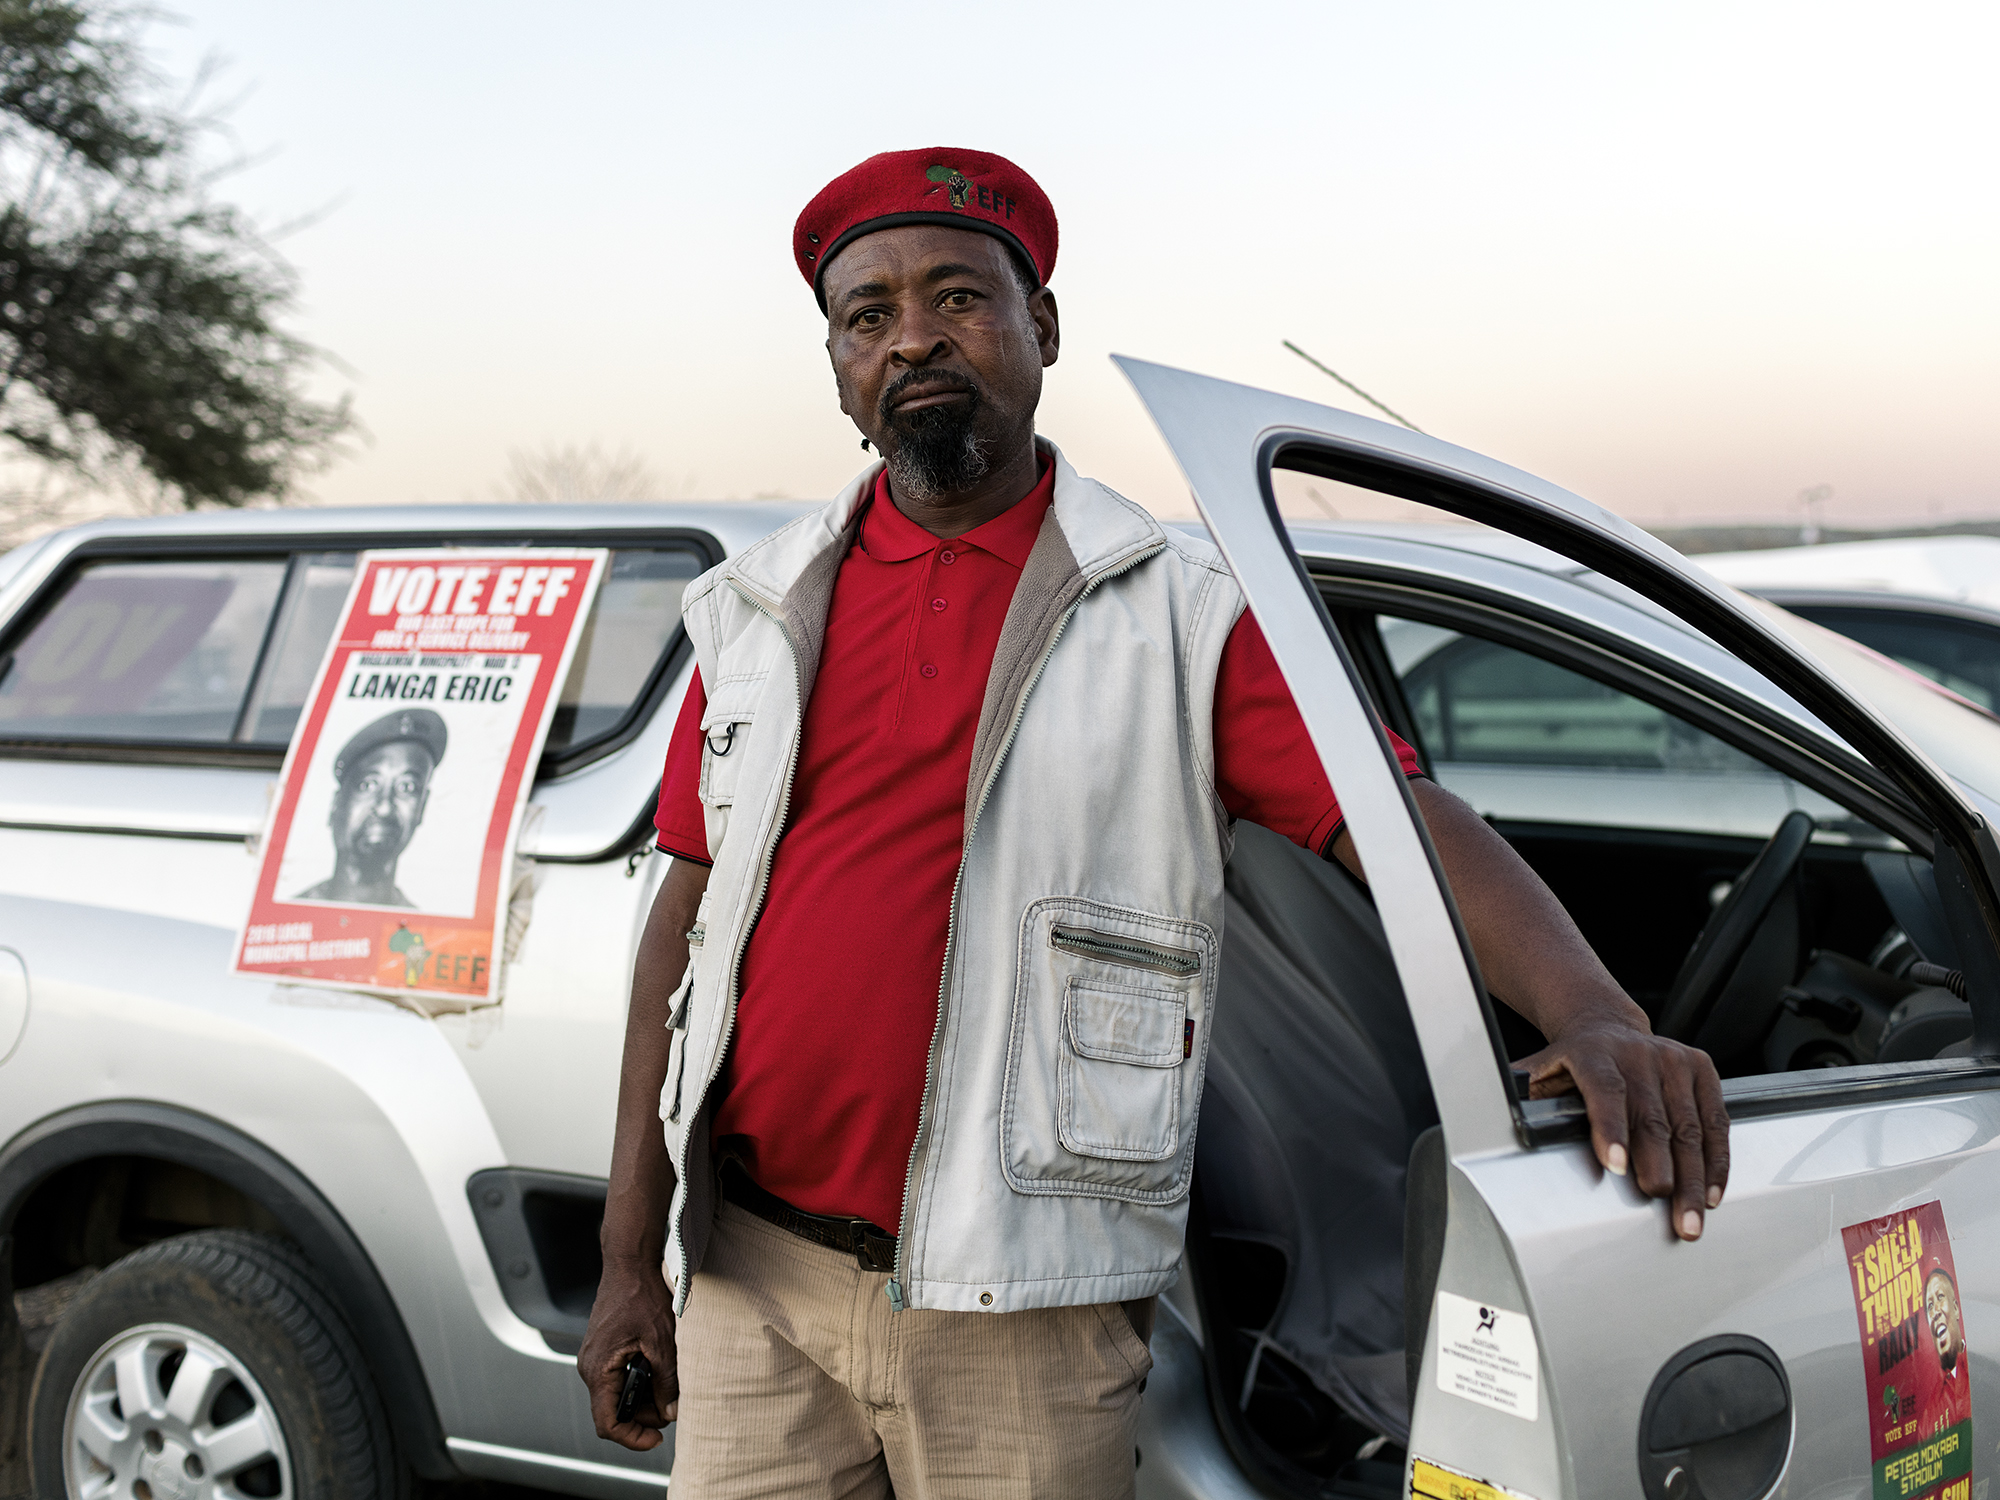 Eric Langa, 51, EFF Ward Councillor, Skimming Village, Mapela, Limpopo, Northern Limb